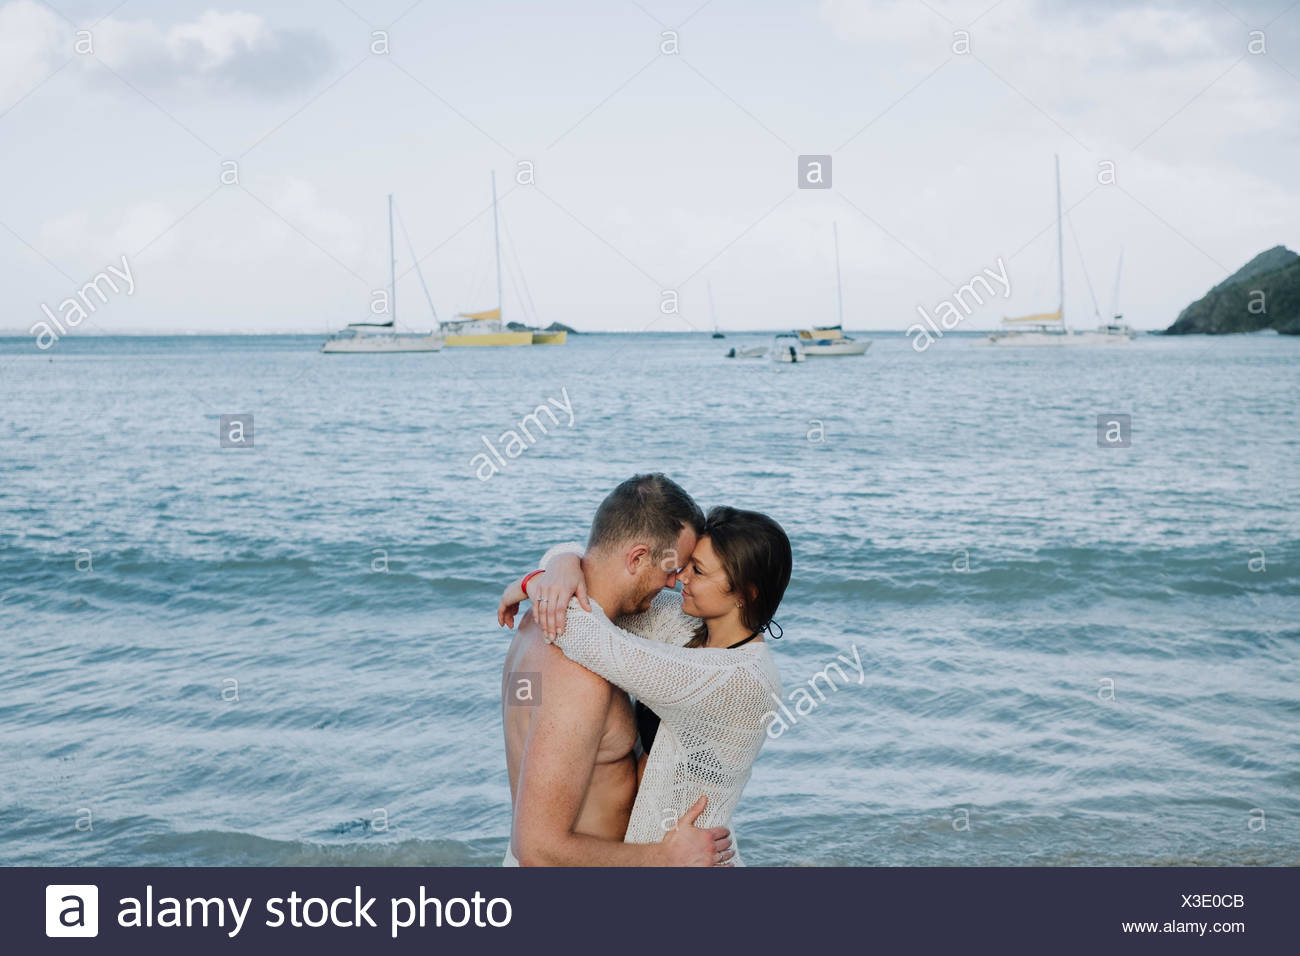 Couple standing by sea, hugging, face to face, Saint Martin, Caribbean - Stock Image